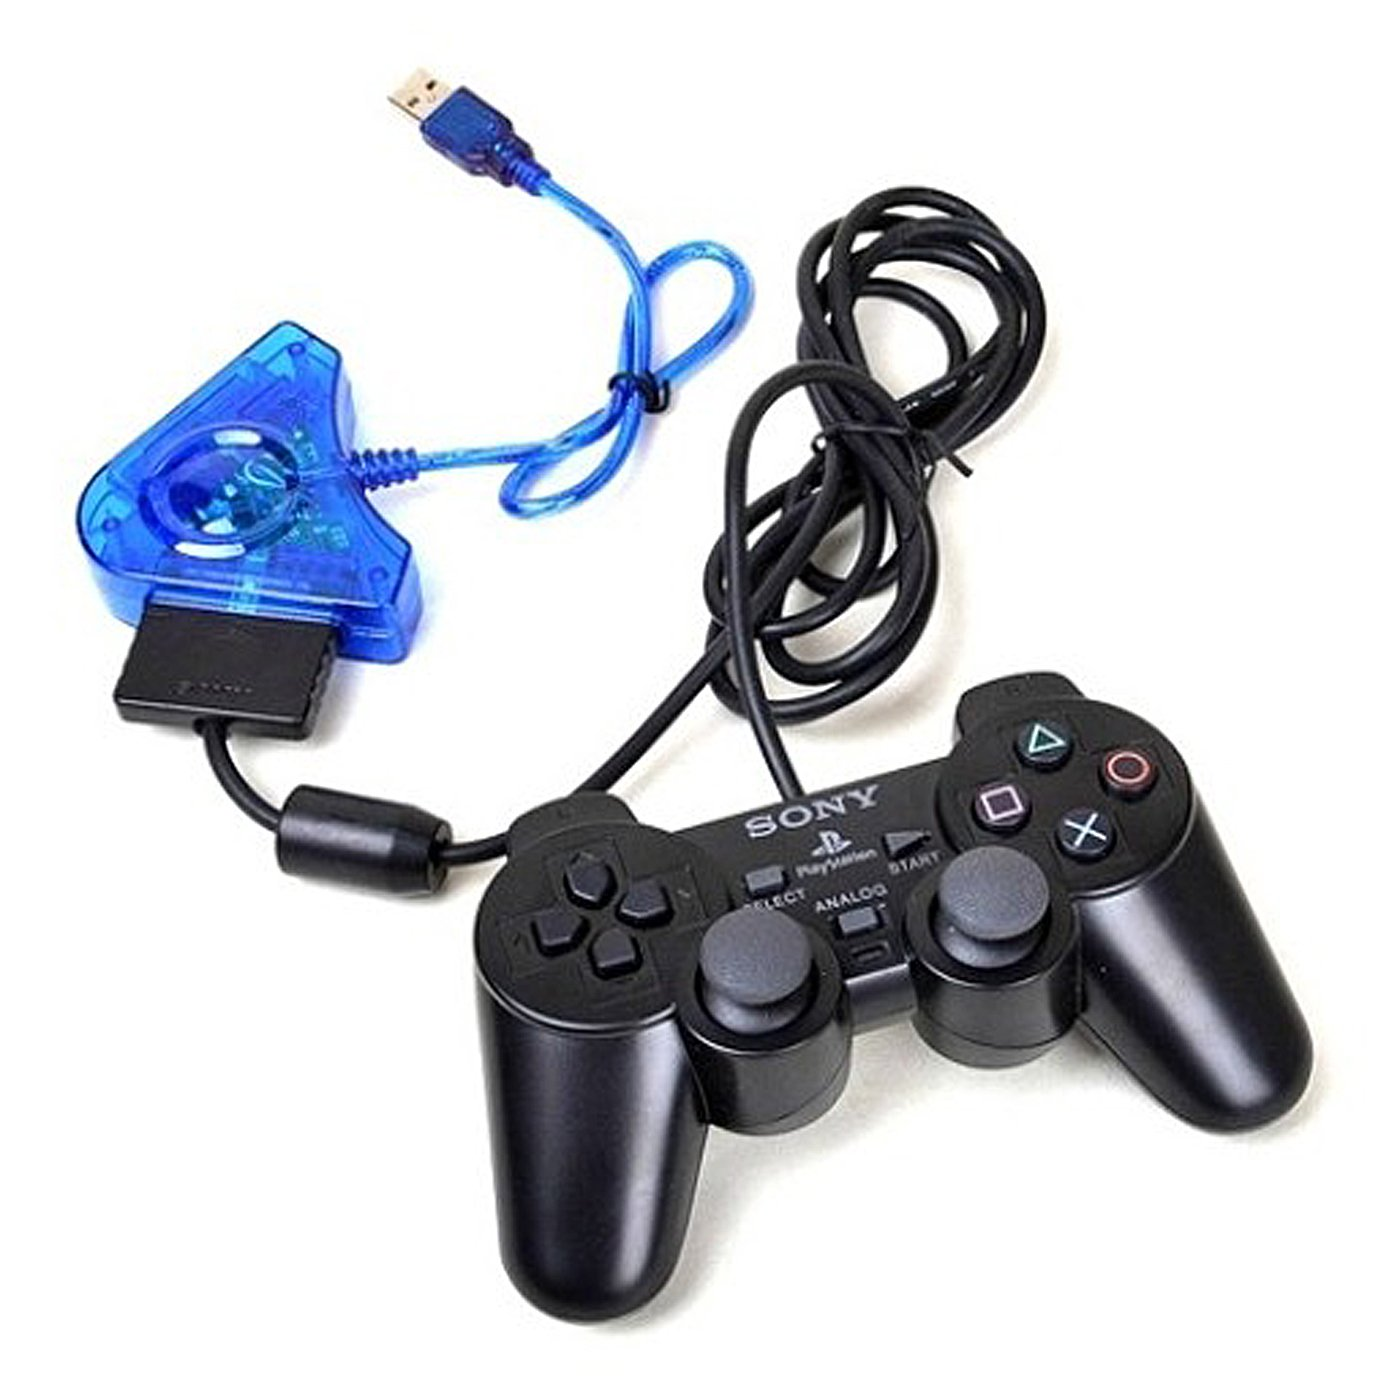 Hde Usb Controller Adapter For Psx And Ps2 Controllers Dual Port Gamepad Interface Circuit Using Or N64 To Pc Converter Computers Accessories